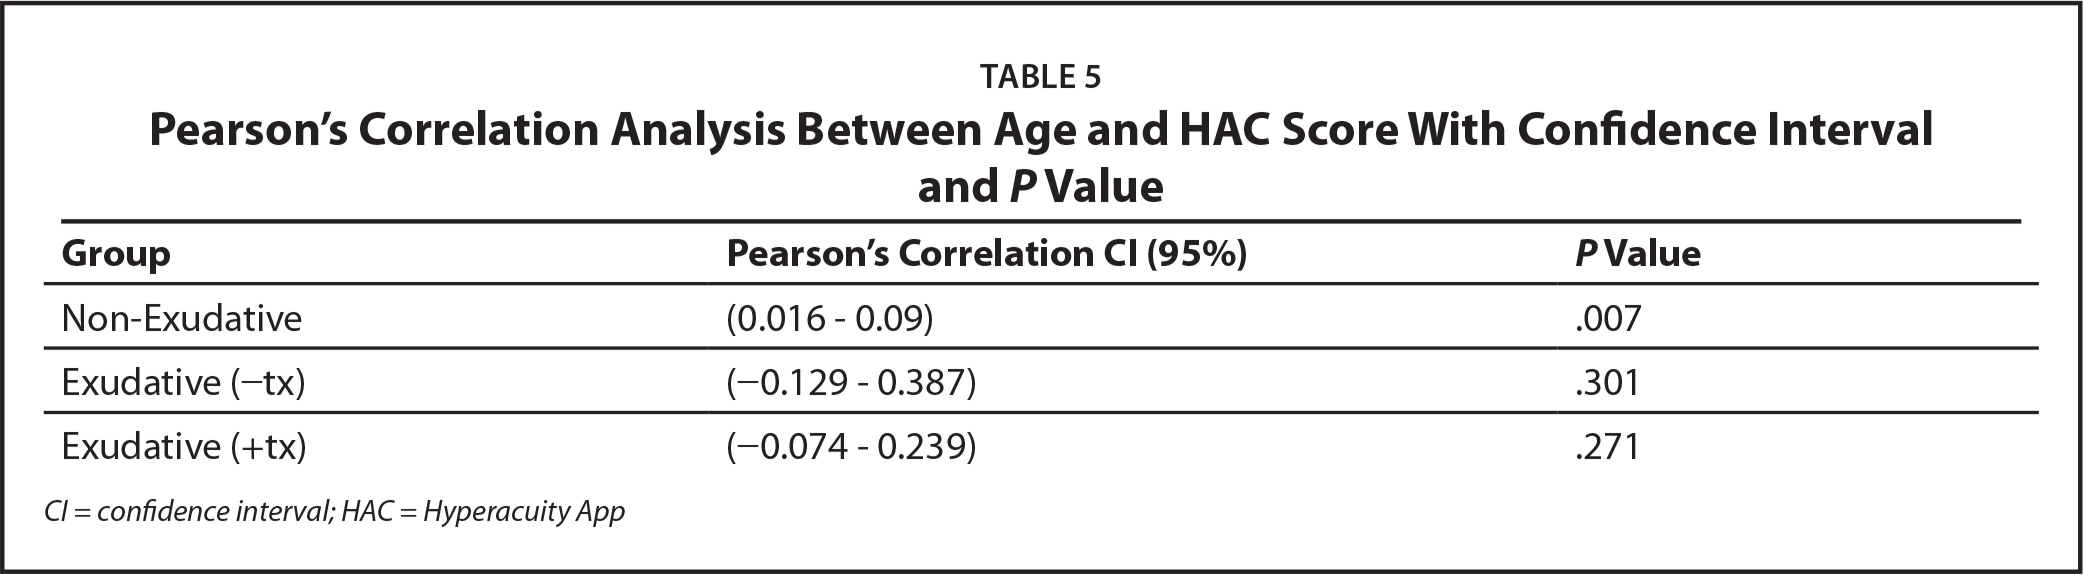 Pearson's Correlation Analysis Between Age and HAC Score With Confidence Interval and P Value